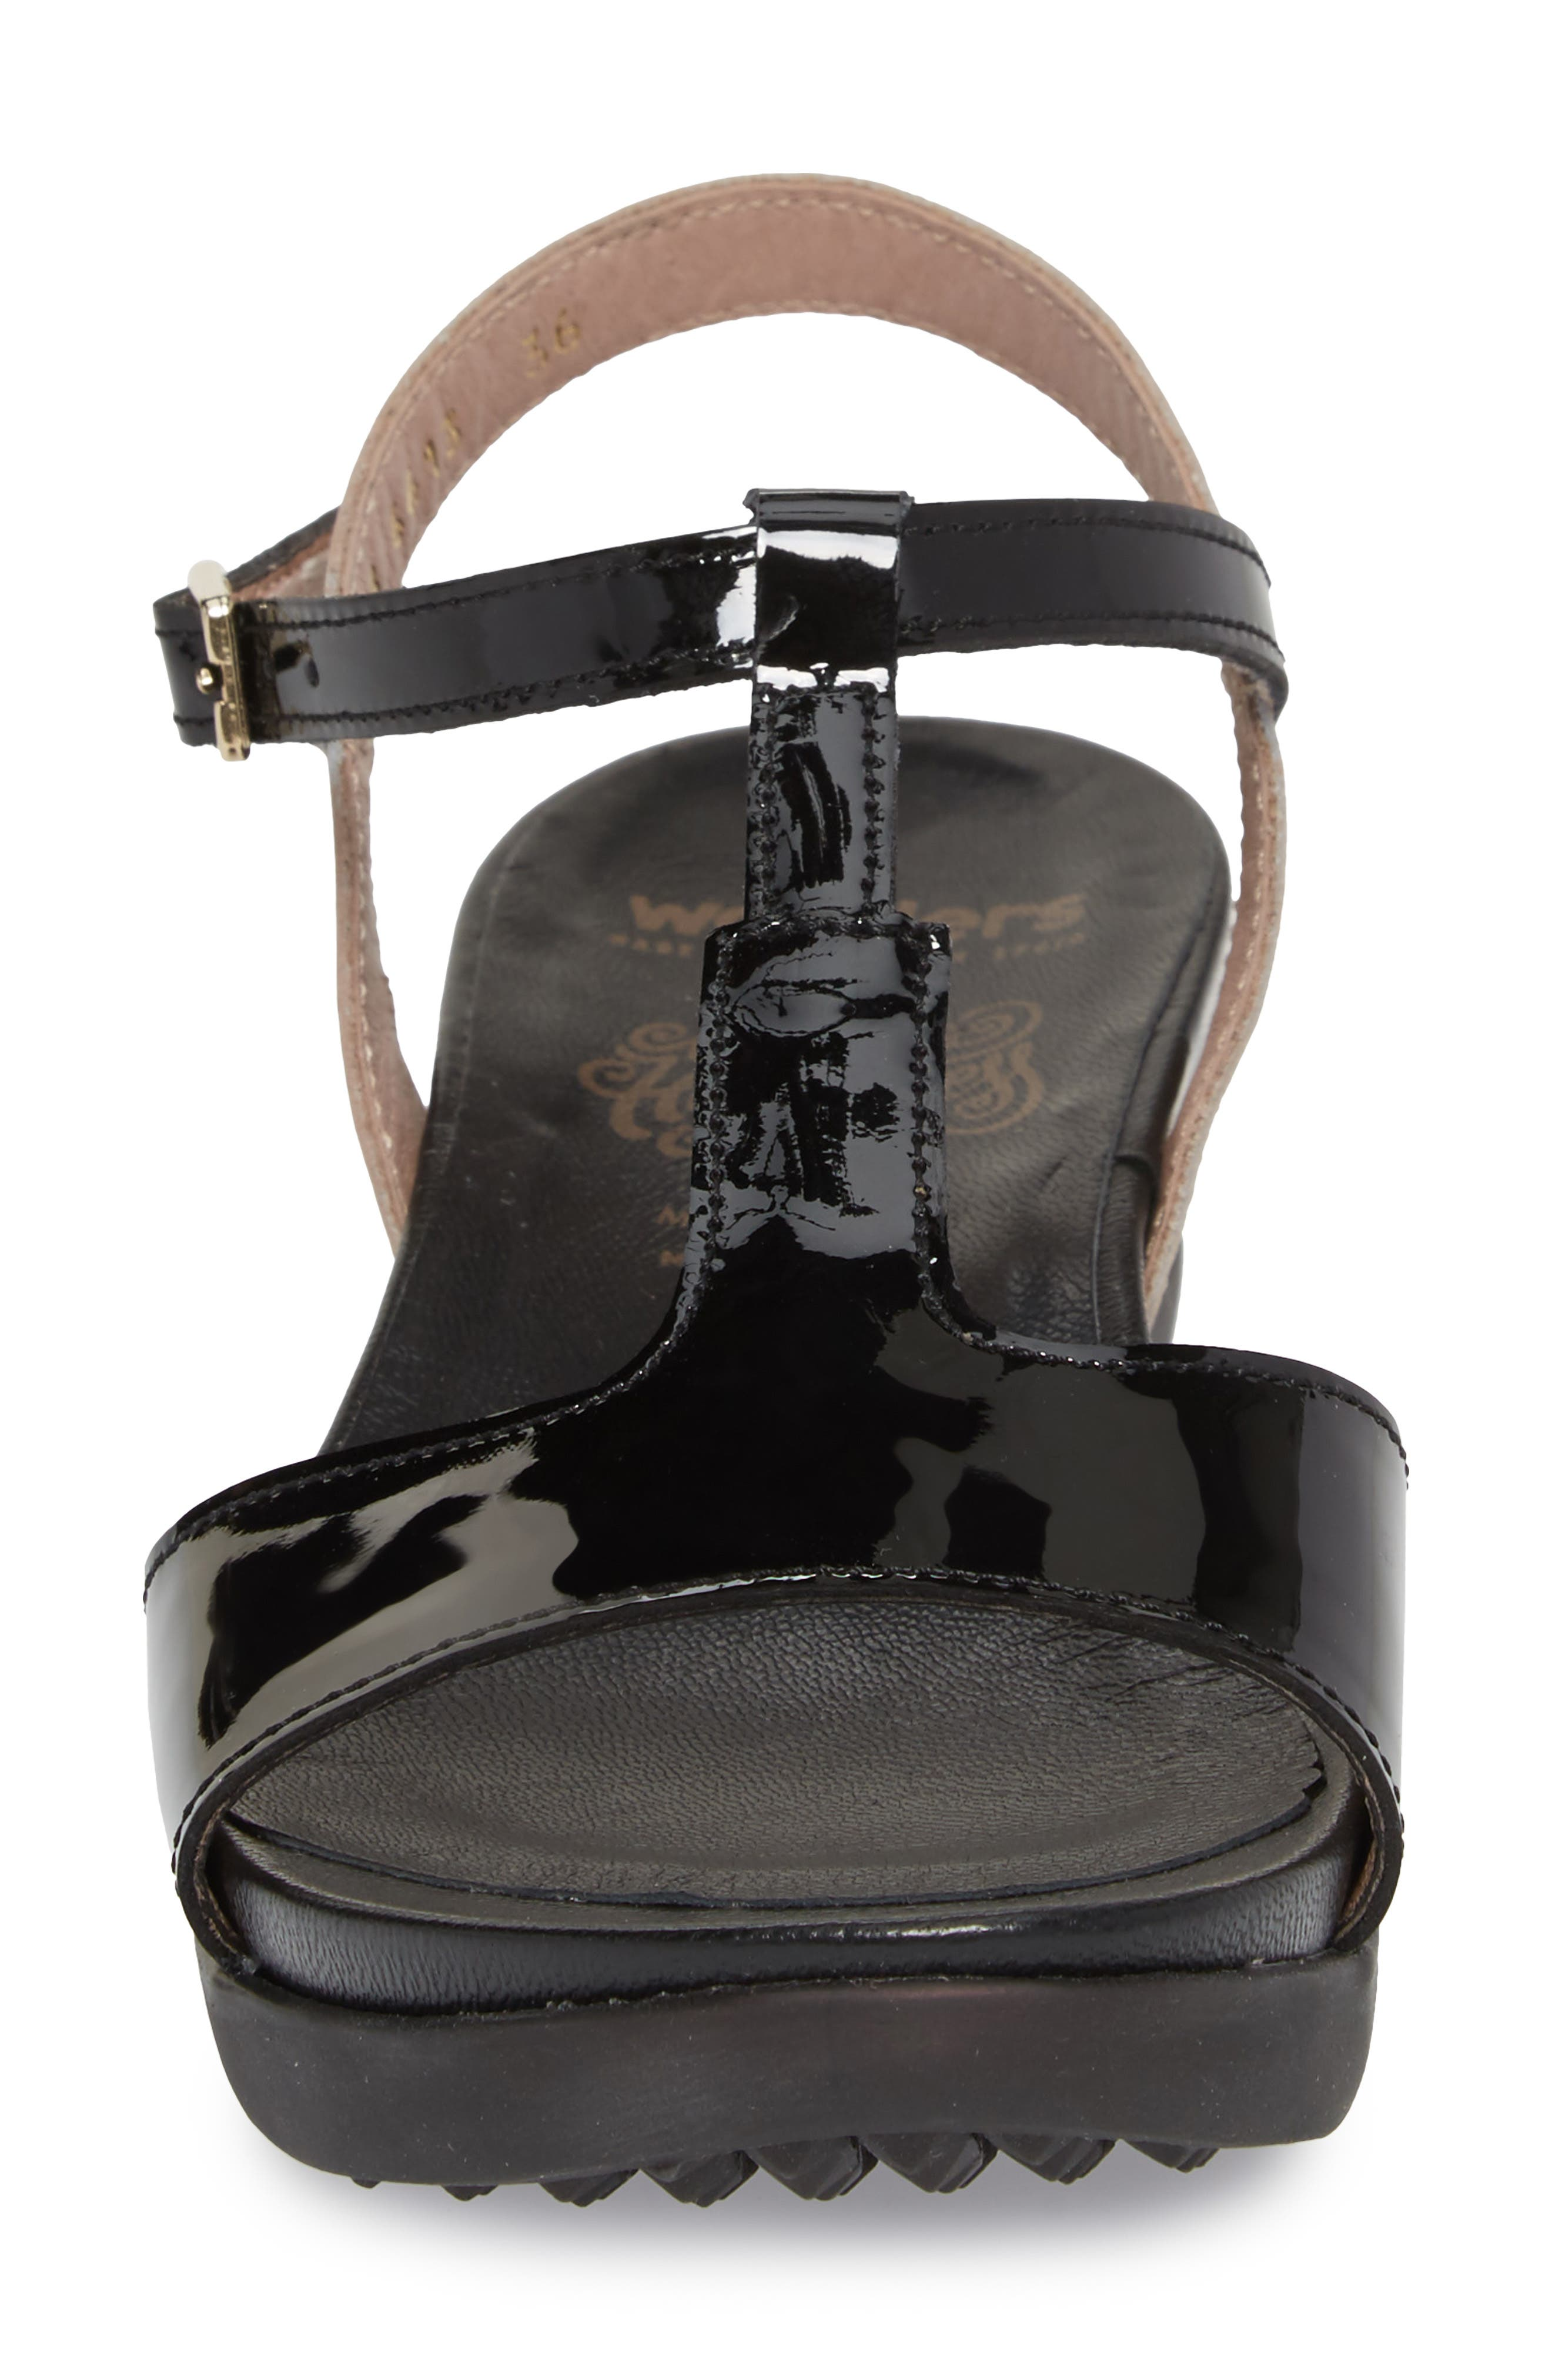 Wedge Sandal,                             Alternate thumbnail 4, color,                             BLACK/ TAUPE LEATHER